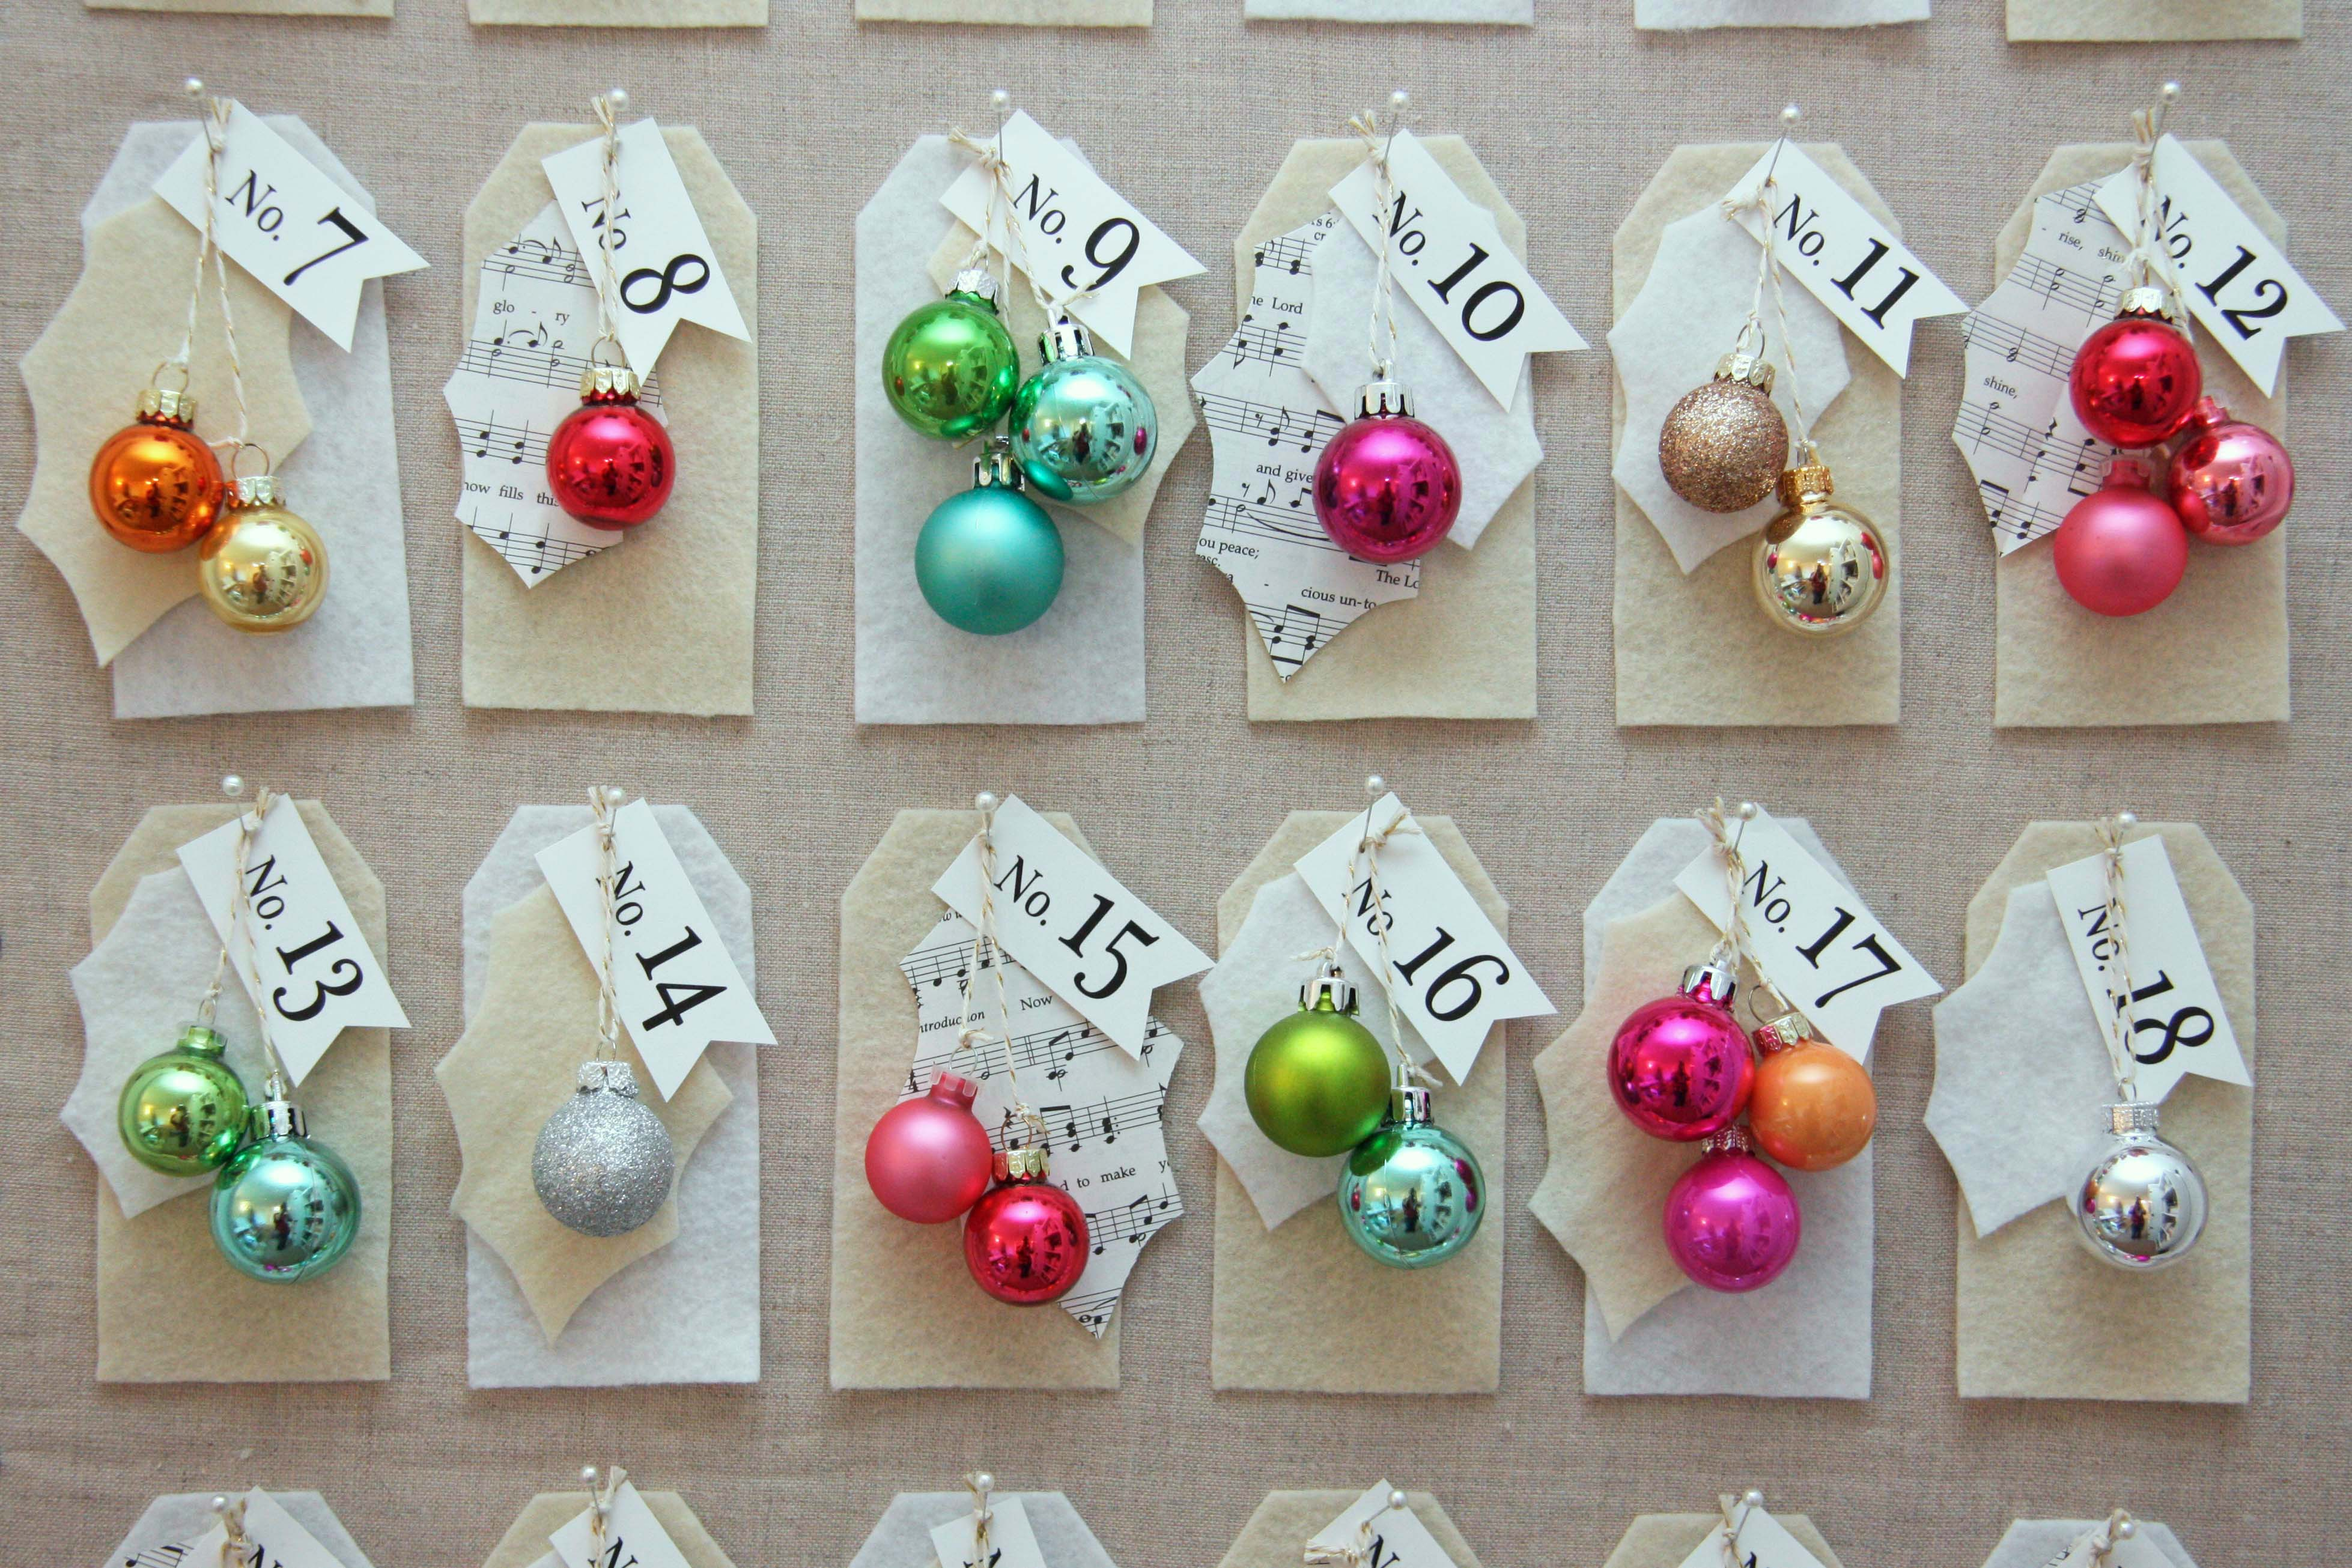 You can make this DIy Christmas countdown board while watching Christmas movies.  This is a fun craft to do with friends.  You can use whatever materials you have on hand to create this fun holiday decor item.  Full tutorial on the blog.